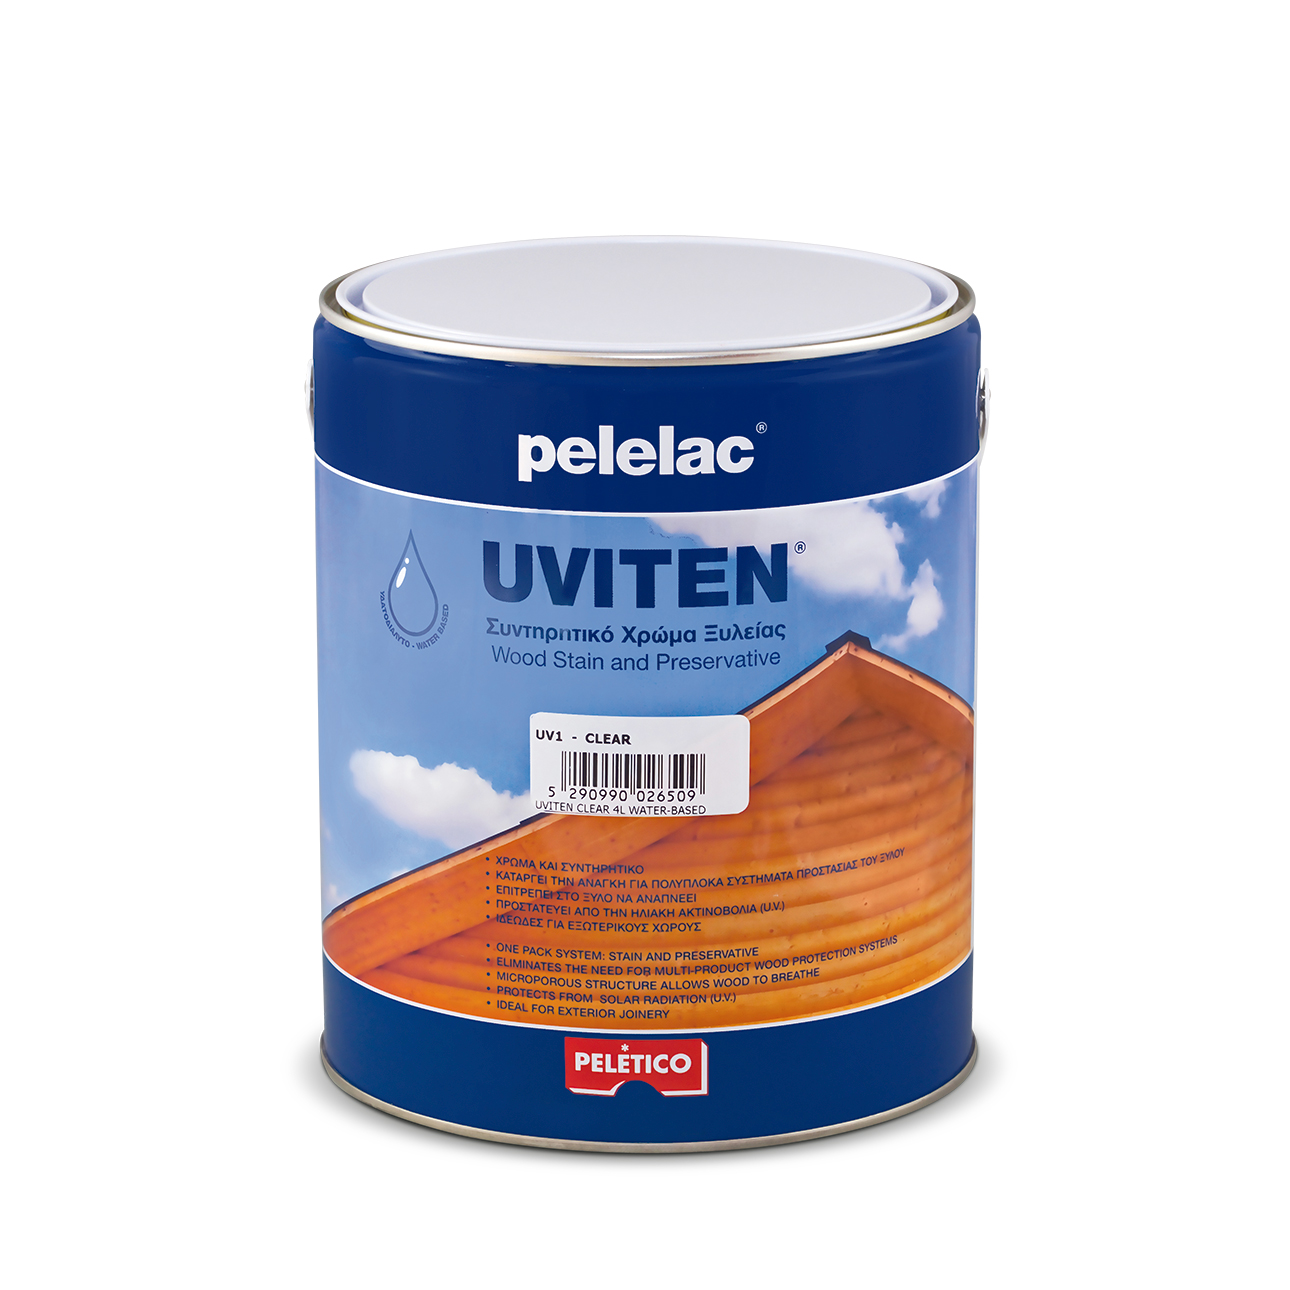 PELELAC UVITEN SUMMER GOLD 2.5L WATER-BASED